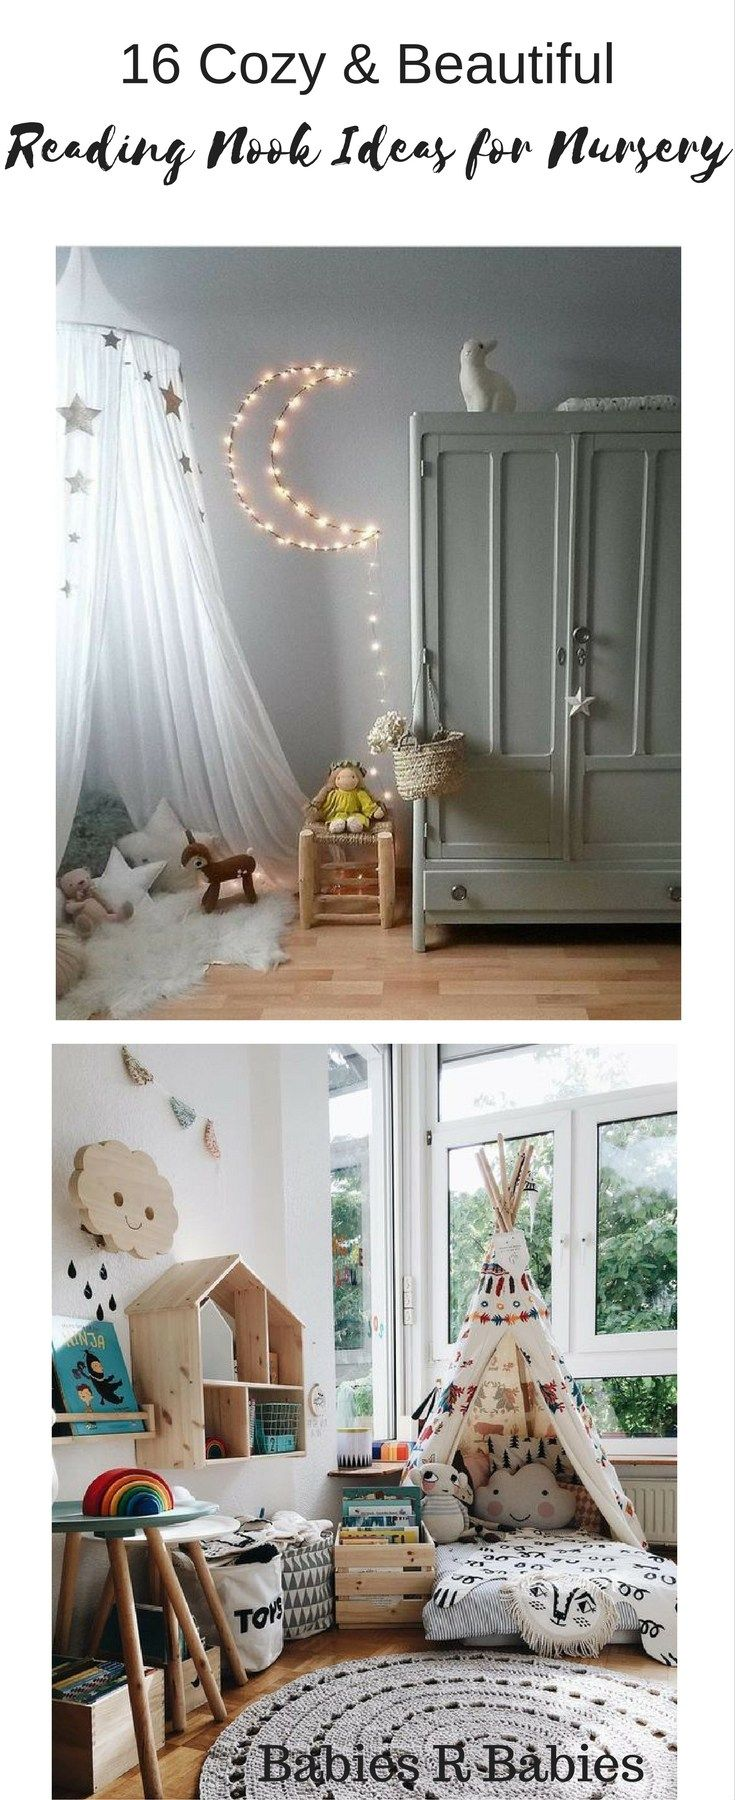 Top tips for making a baby s nursery special - 16 Cozy And Beautiful Nursery Reading Nook Ideas